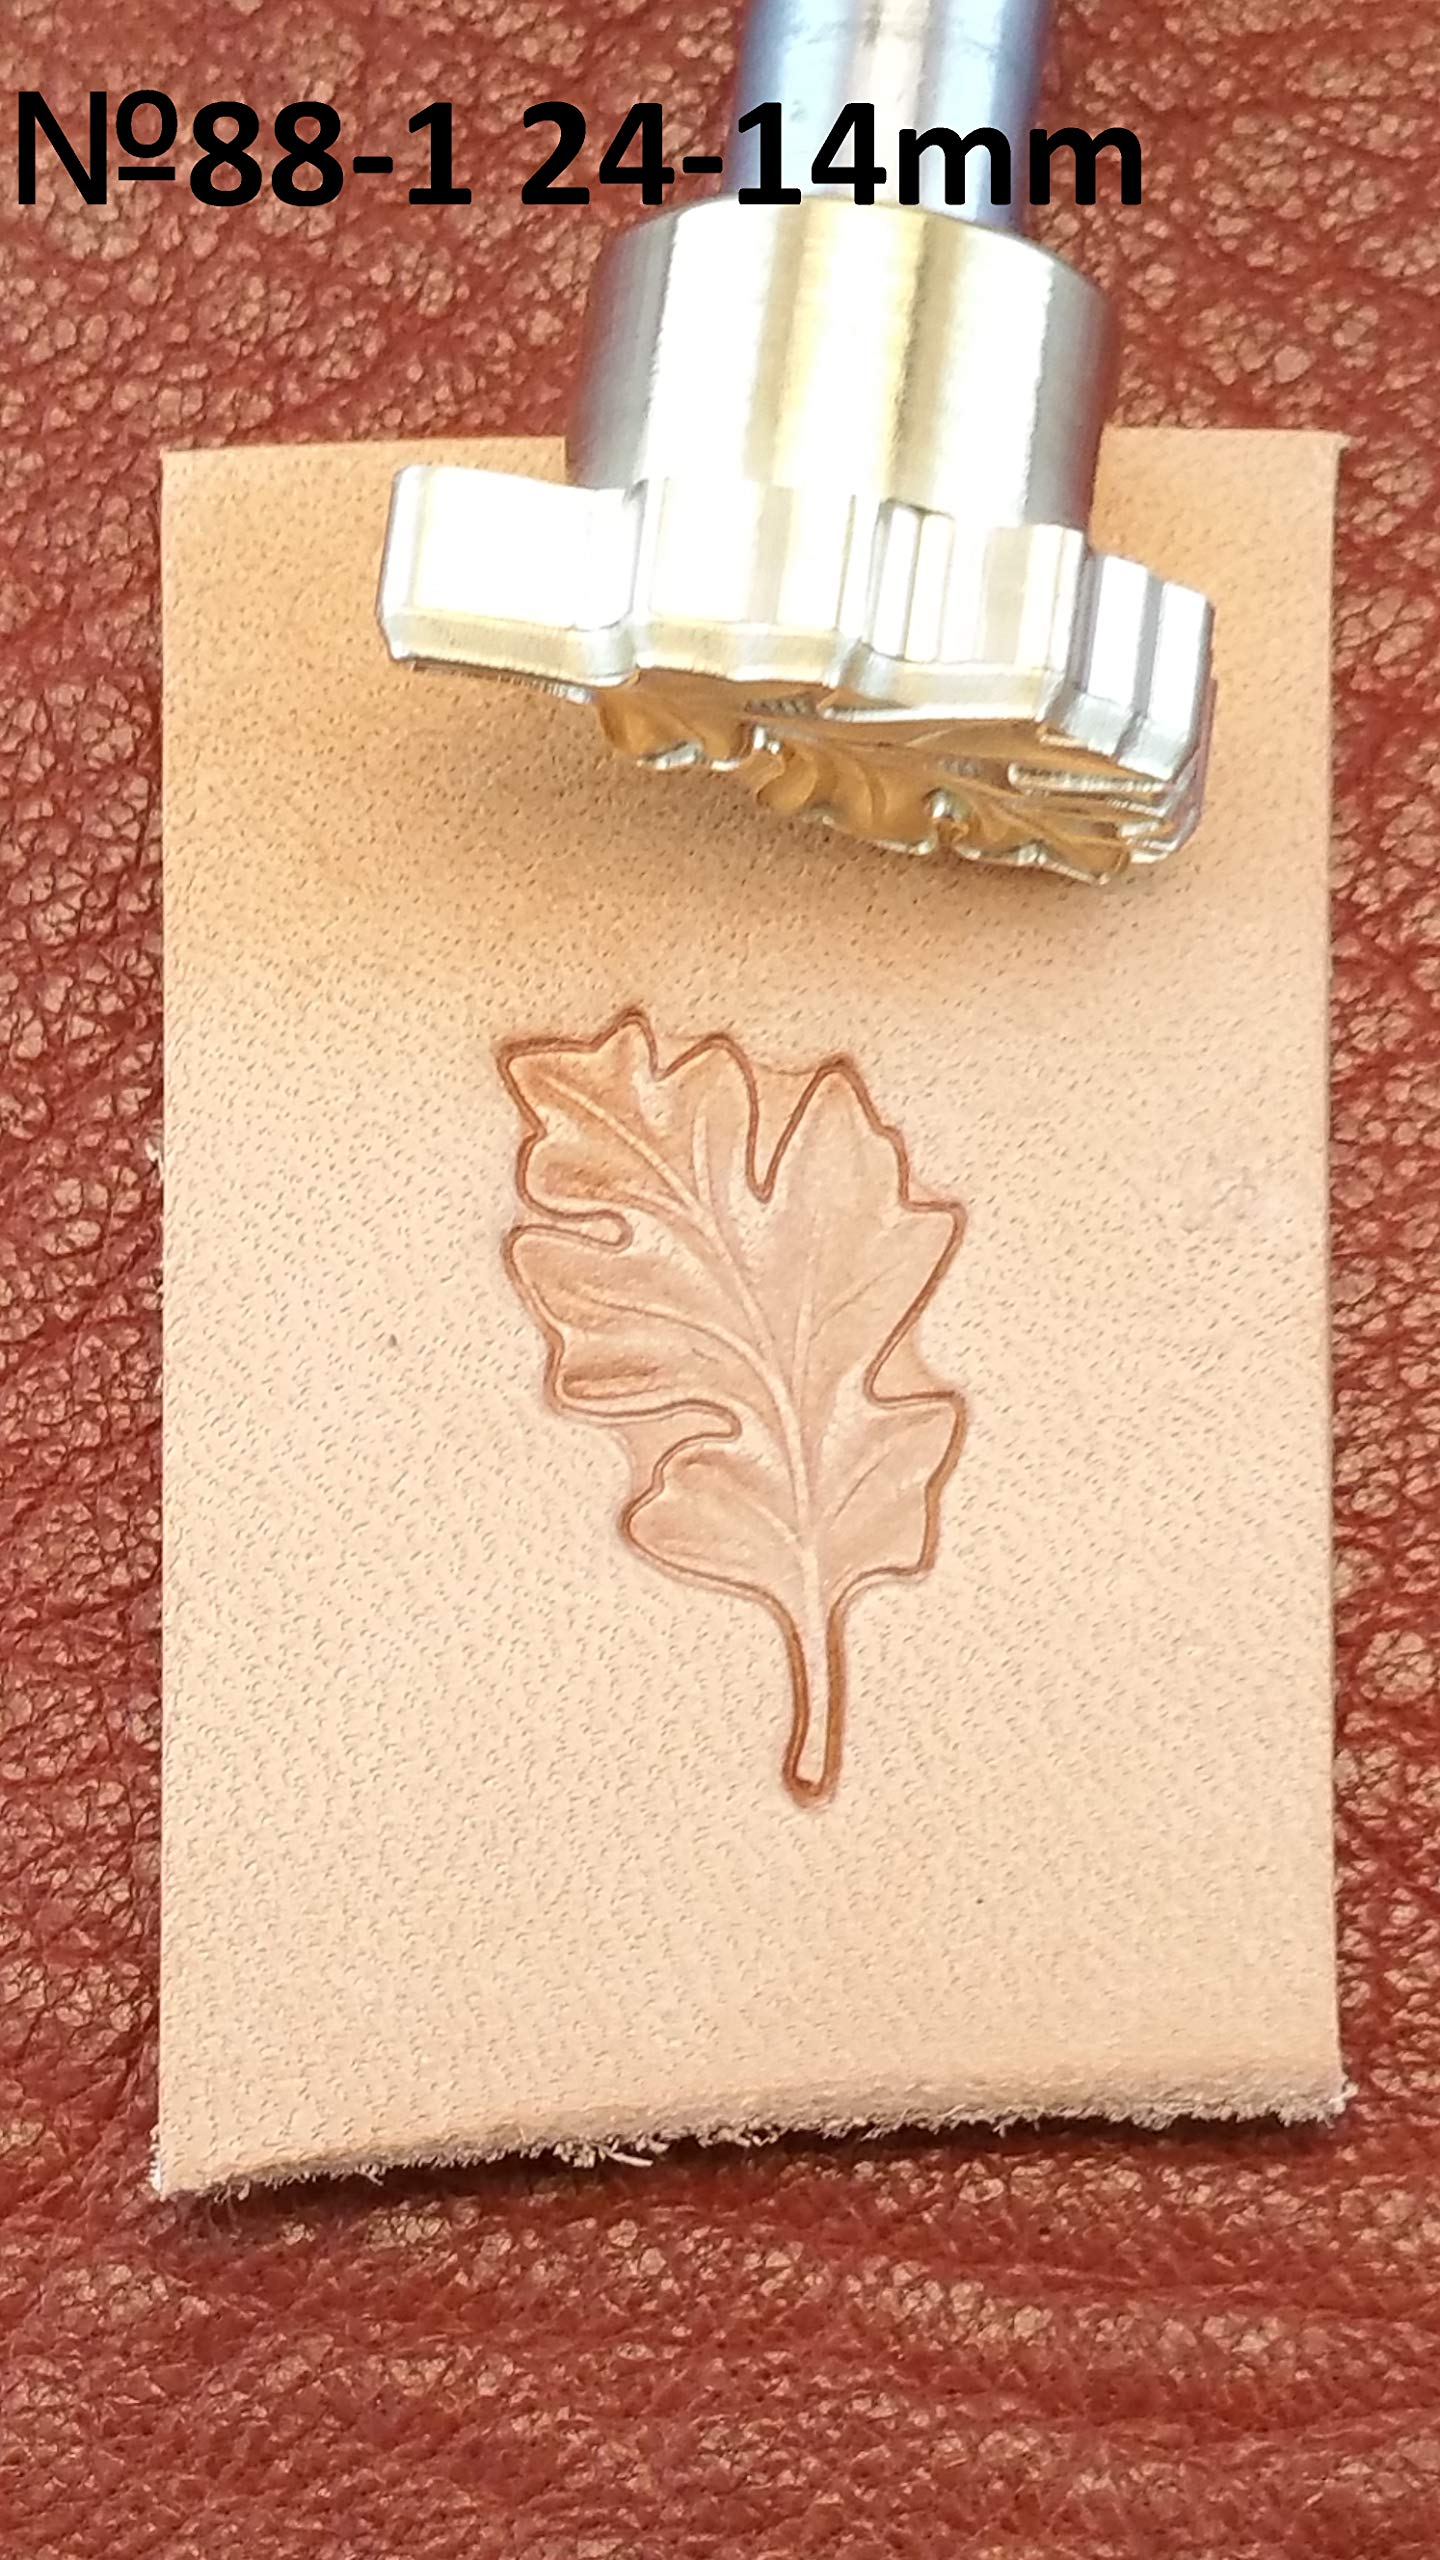 Acorn Leather Crafting Stamp Tool for Leather Crafts Brass #88Set by DandS ltd (Image #1)